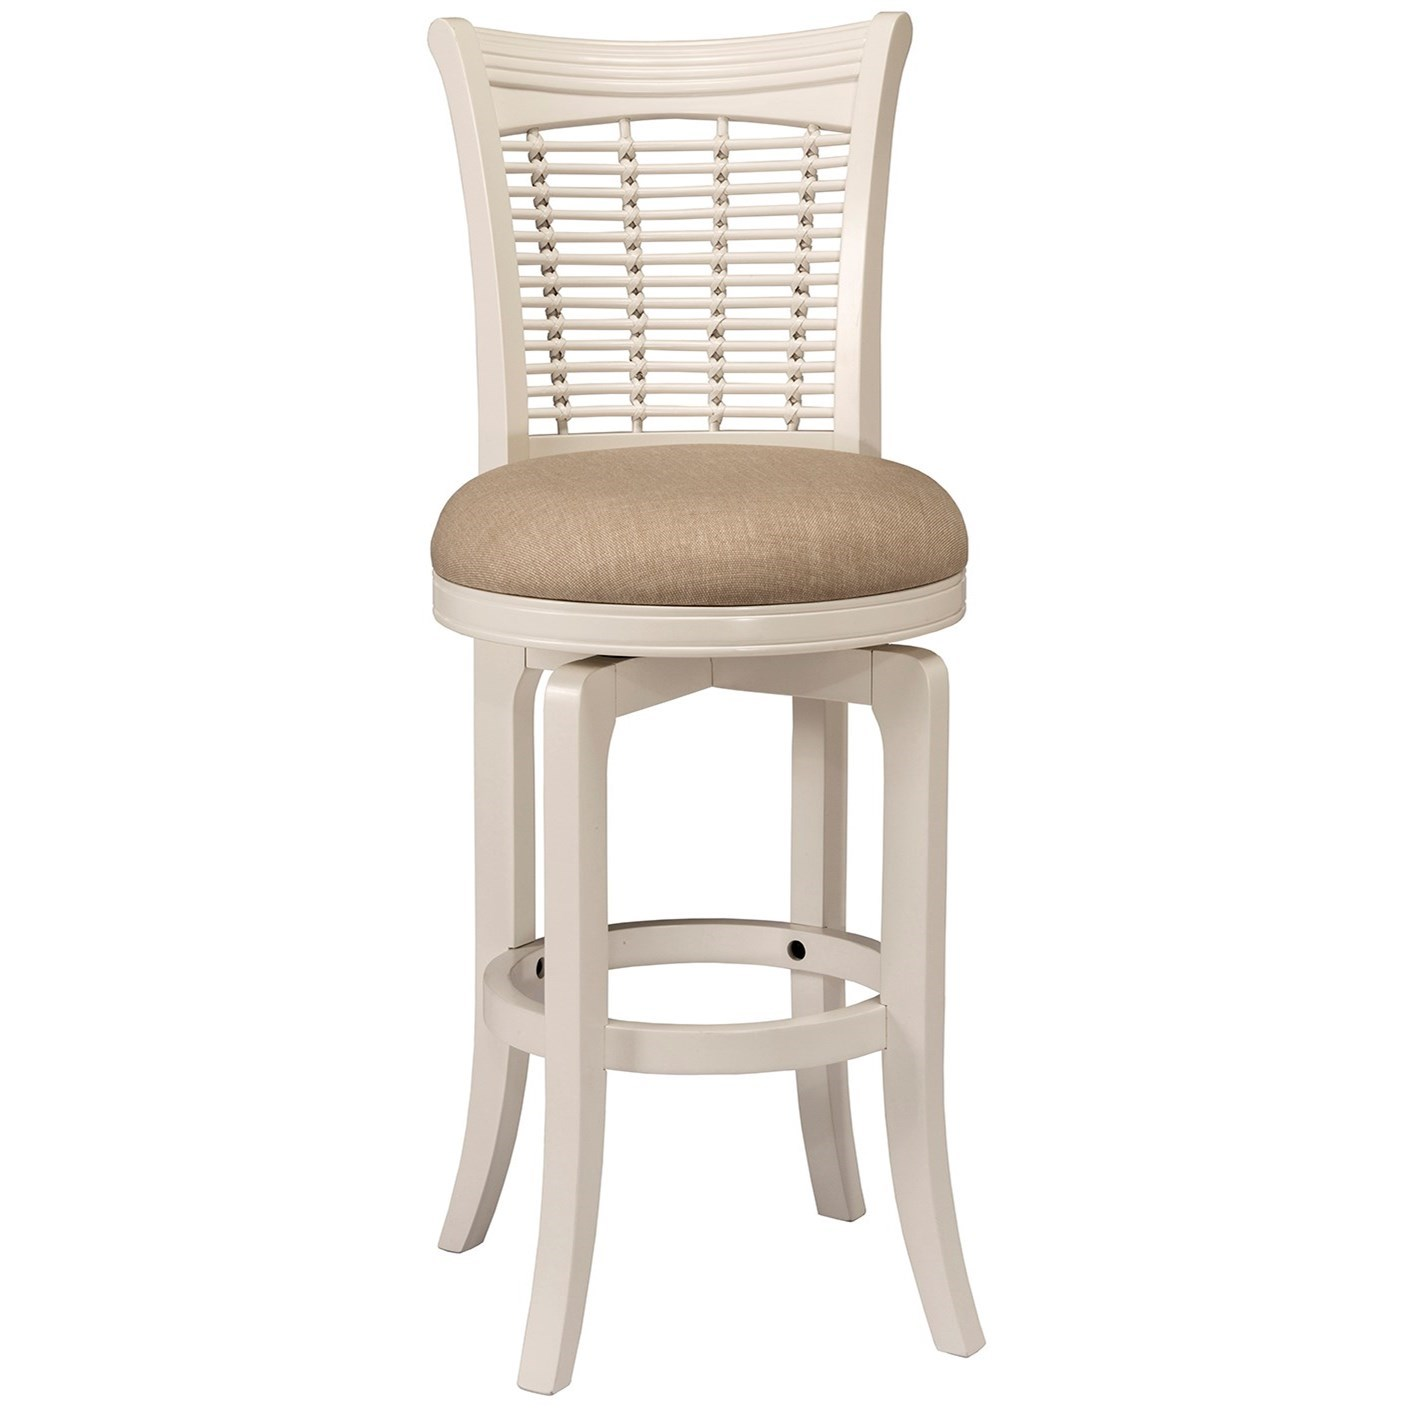 Bayberry White Swivel Counter Stool by Hillsdale at Mueller Furniture